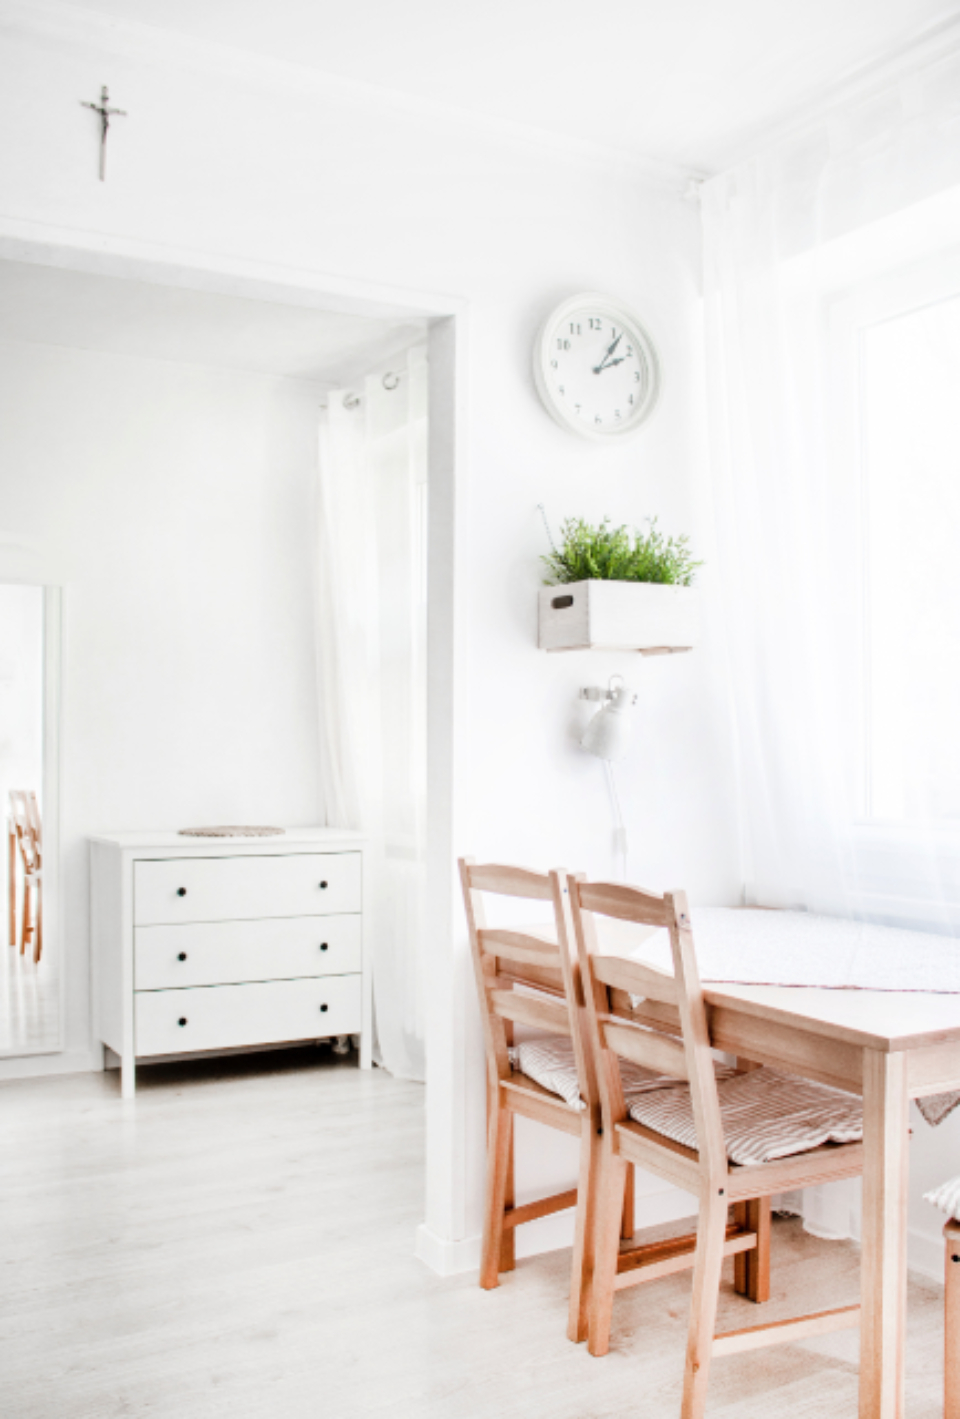 office minimal white chair desk clock drawers plant window